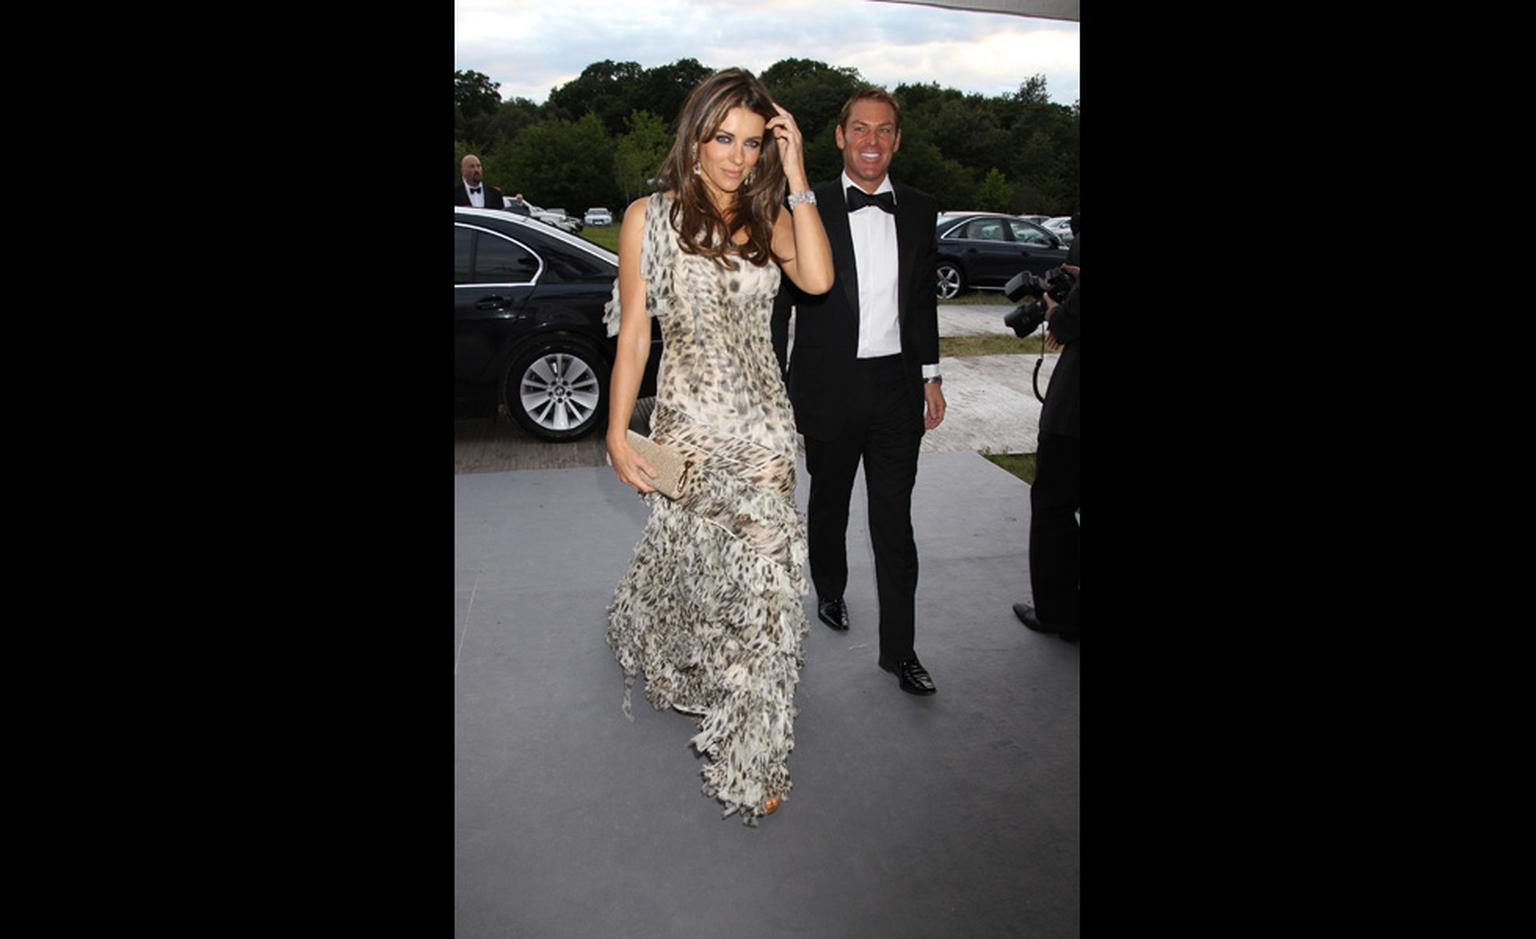 Elizabeth Hurley makes a grand entrance in Chopard diamond earrings and bracelet and a Cavalli gown with beau Shane Warne a discreet few steps behind.